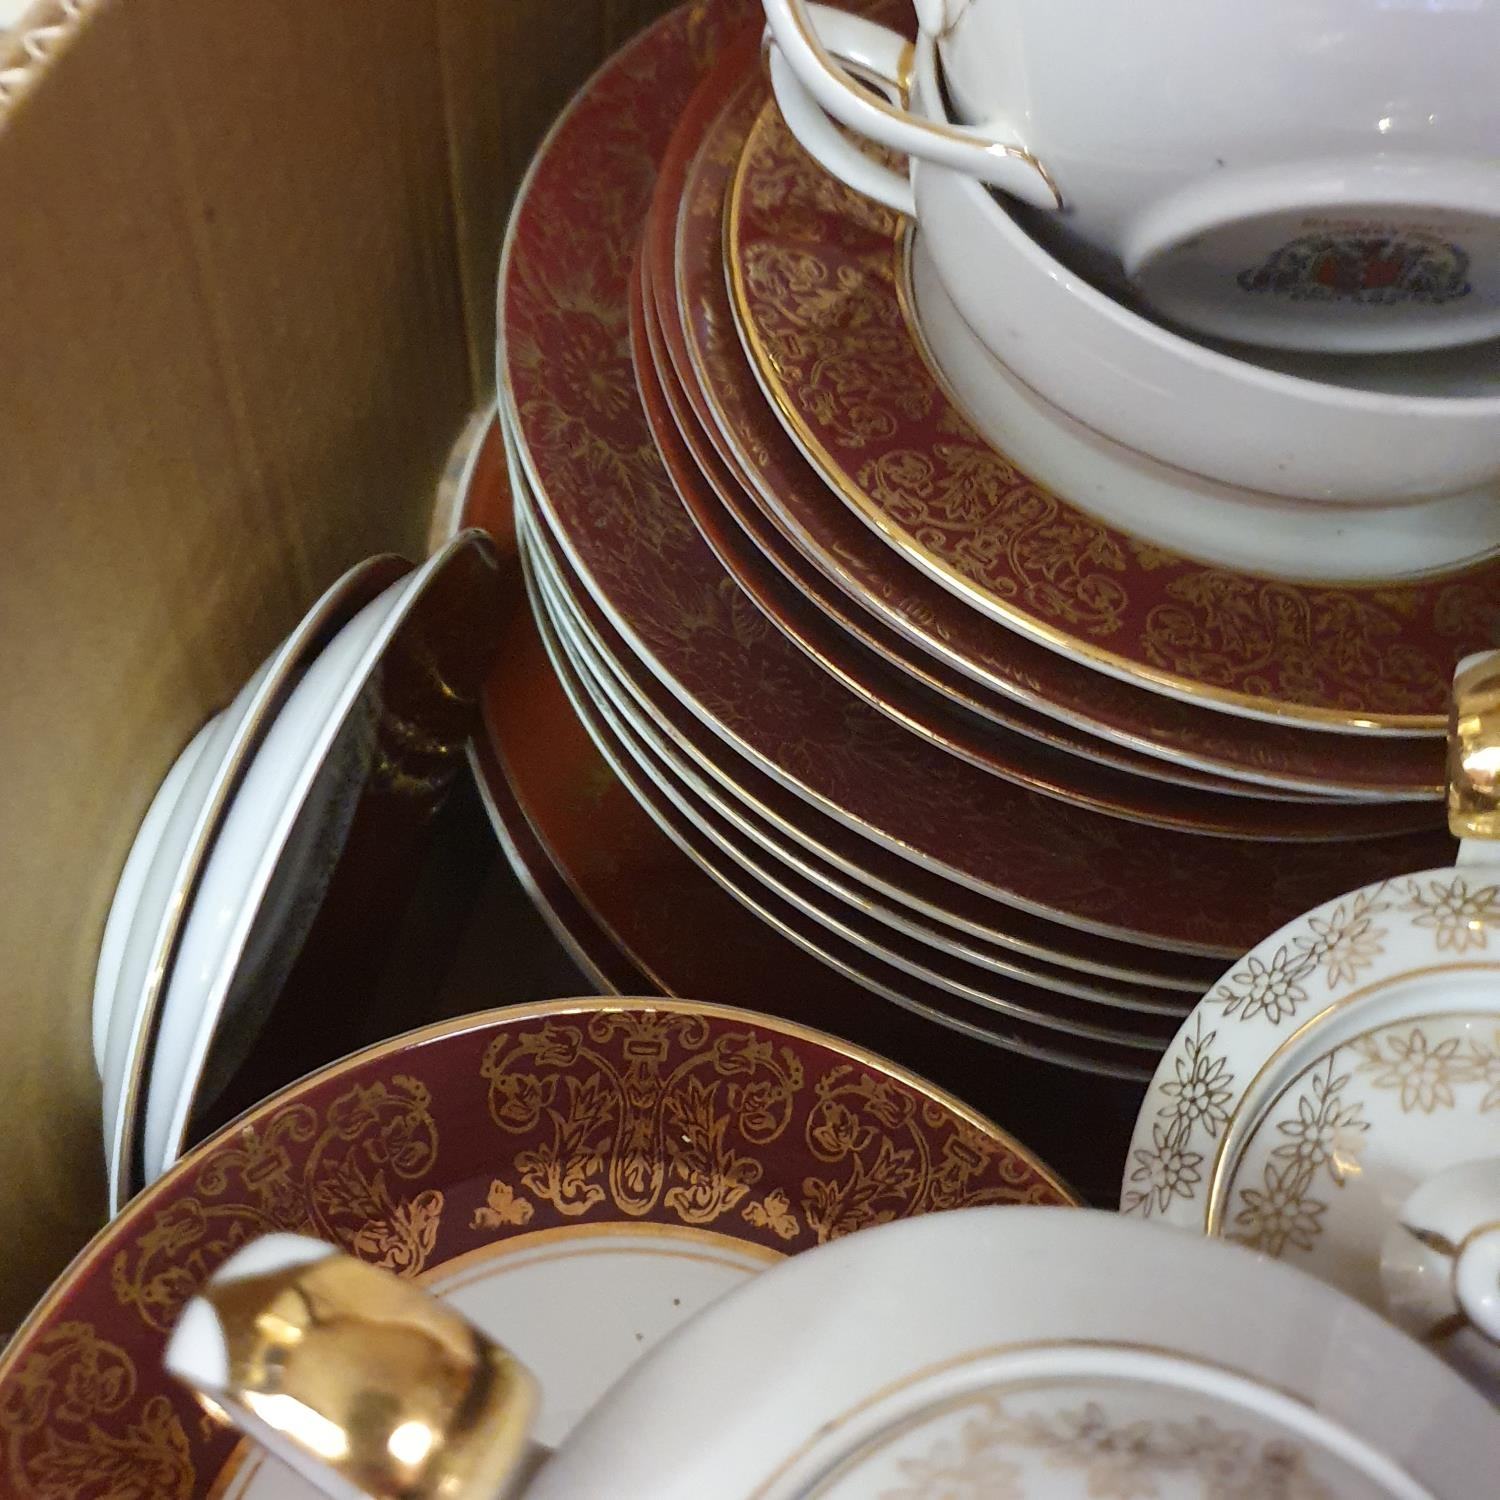 A pair of Staffordshire flat back spaniels, a Royal Doulton part dinner service, other ceramics - Image 13 of 15